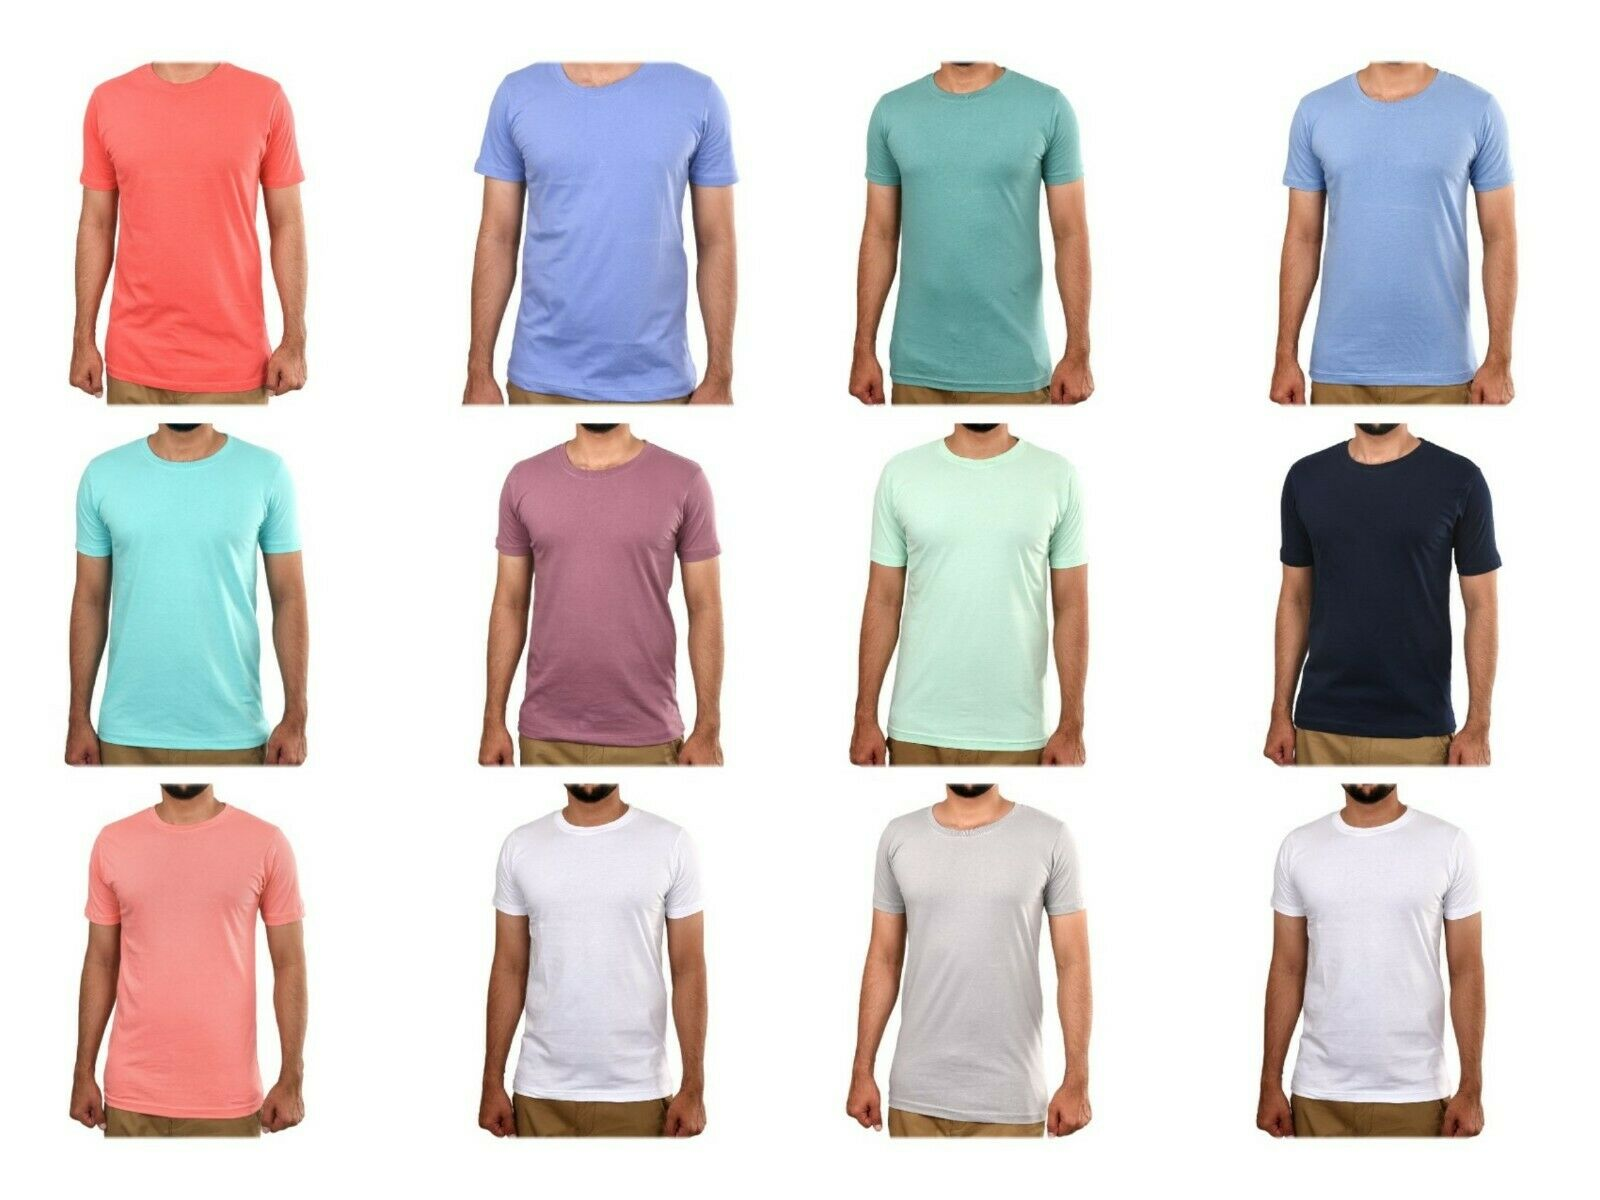 Mens 100%Cotton Plain Short Sleeve Basic Plain T-Shirt Tee Top Casual Round Neck